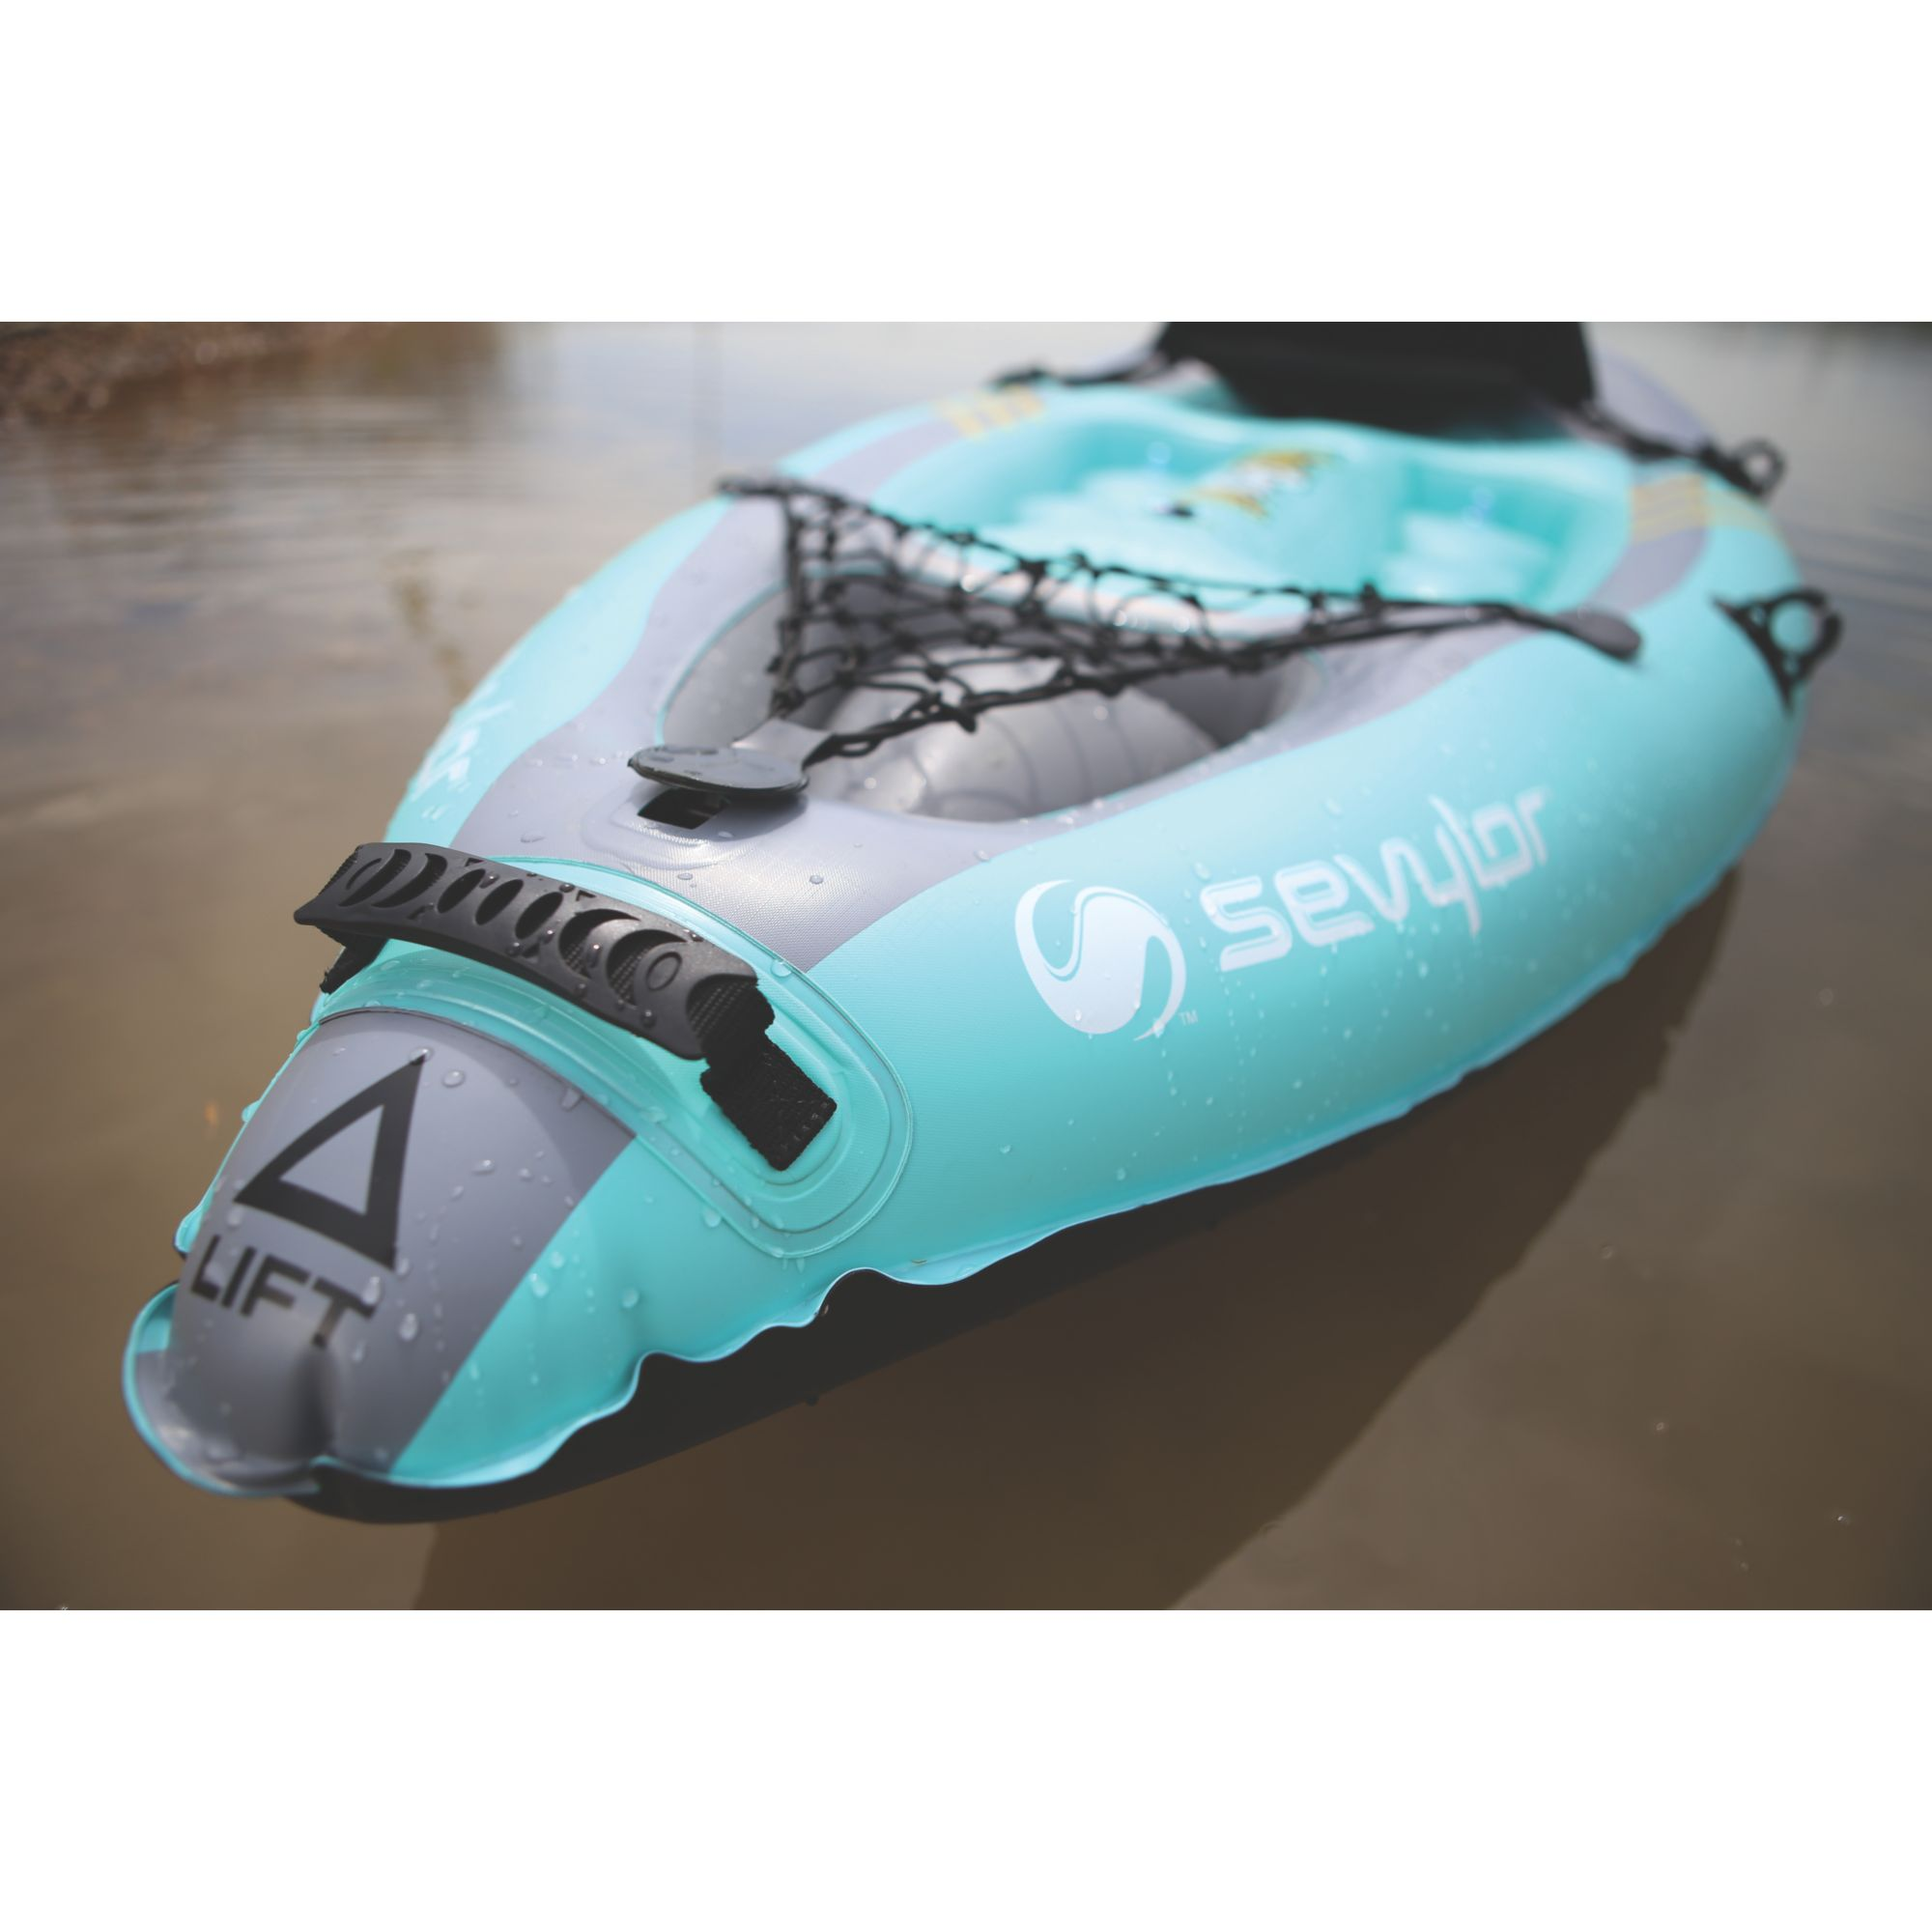 QuikPak™ K1 Coverless Sit-On-Top Kayak | Sevylor